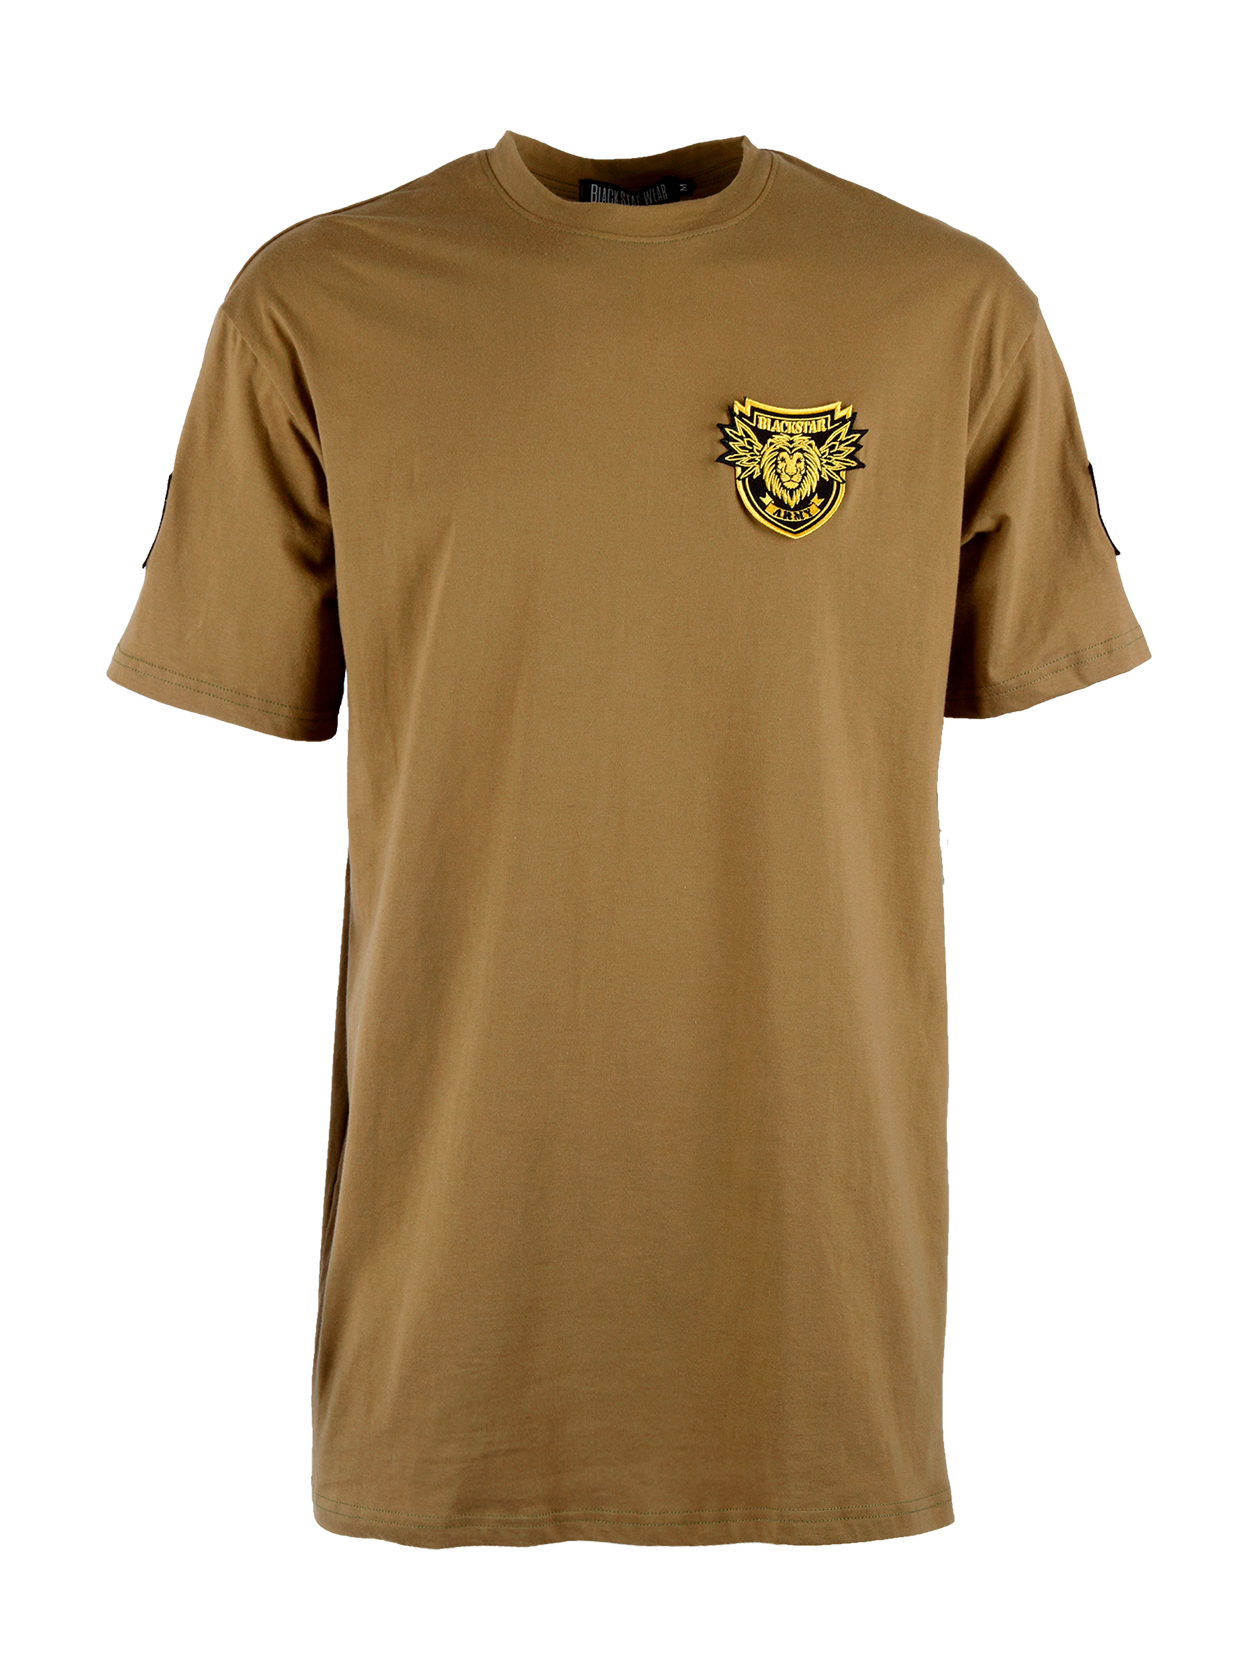 Mens t-shirt BS ArmyMens military style t-shirt by Black Star Wear. Longline cut, straight fit, natural cotton (95%) and lycra (5%) blend, o-neck. Shevron patches on the sleeves, Black Star Army patch with a lions head on the chest. Avaliable in khaki.<br><br>size: XS<br>color: Khaki<br>gender: male